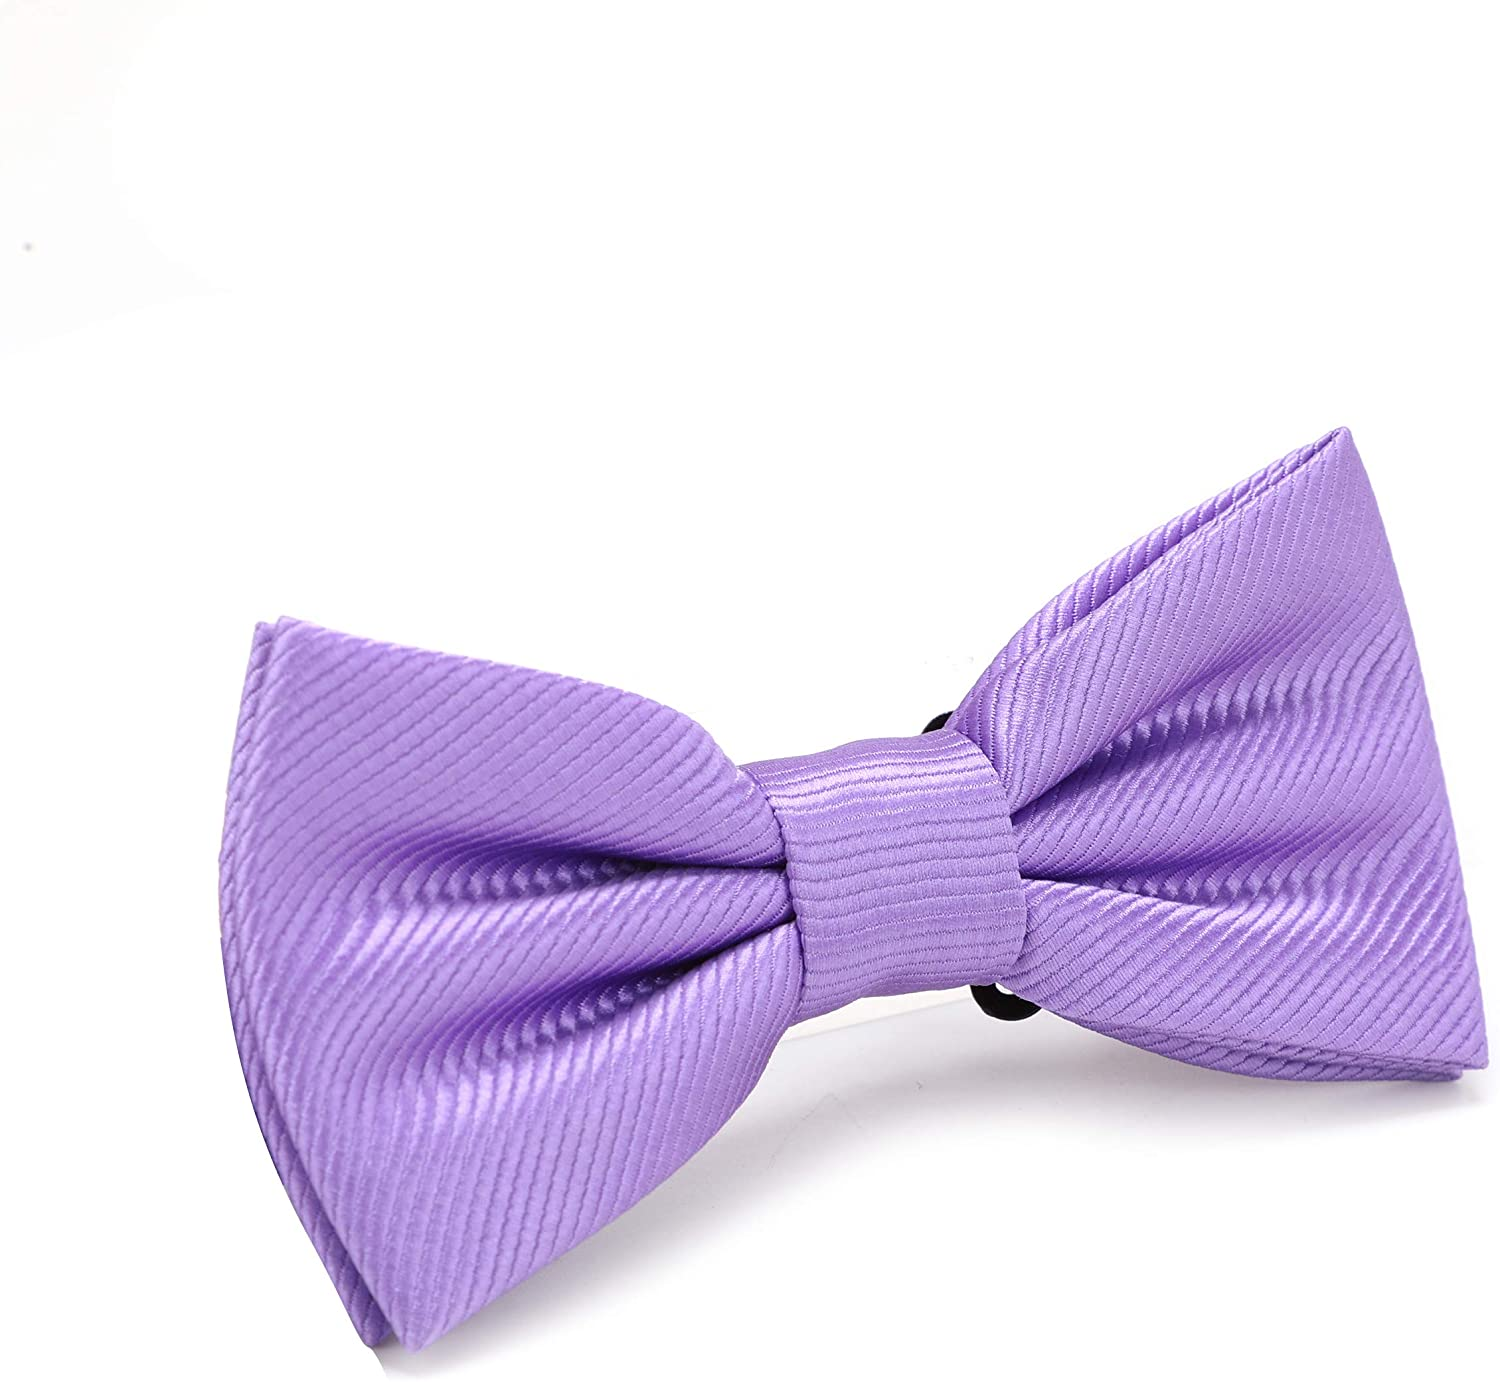 Mens Solid Pre-tied bow ties,Adjustable Tuxedo Bowtie For Boy With Multiple Colors,By Fortunatever(11''-18'')